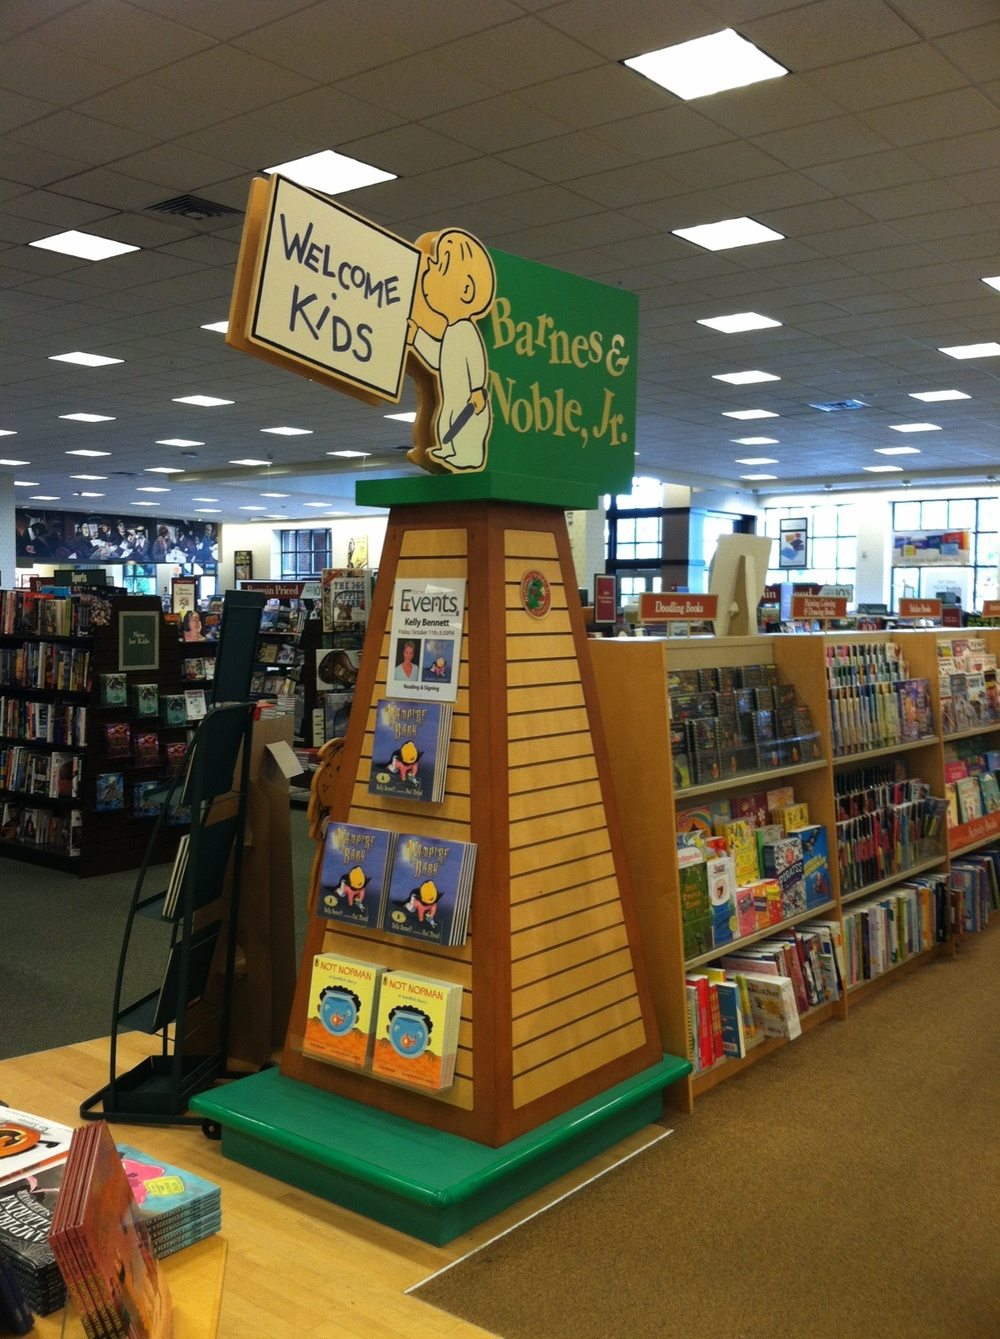 B&N Children's Section welcome